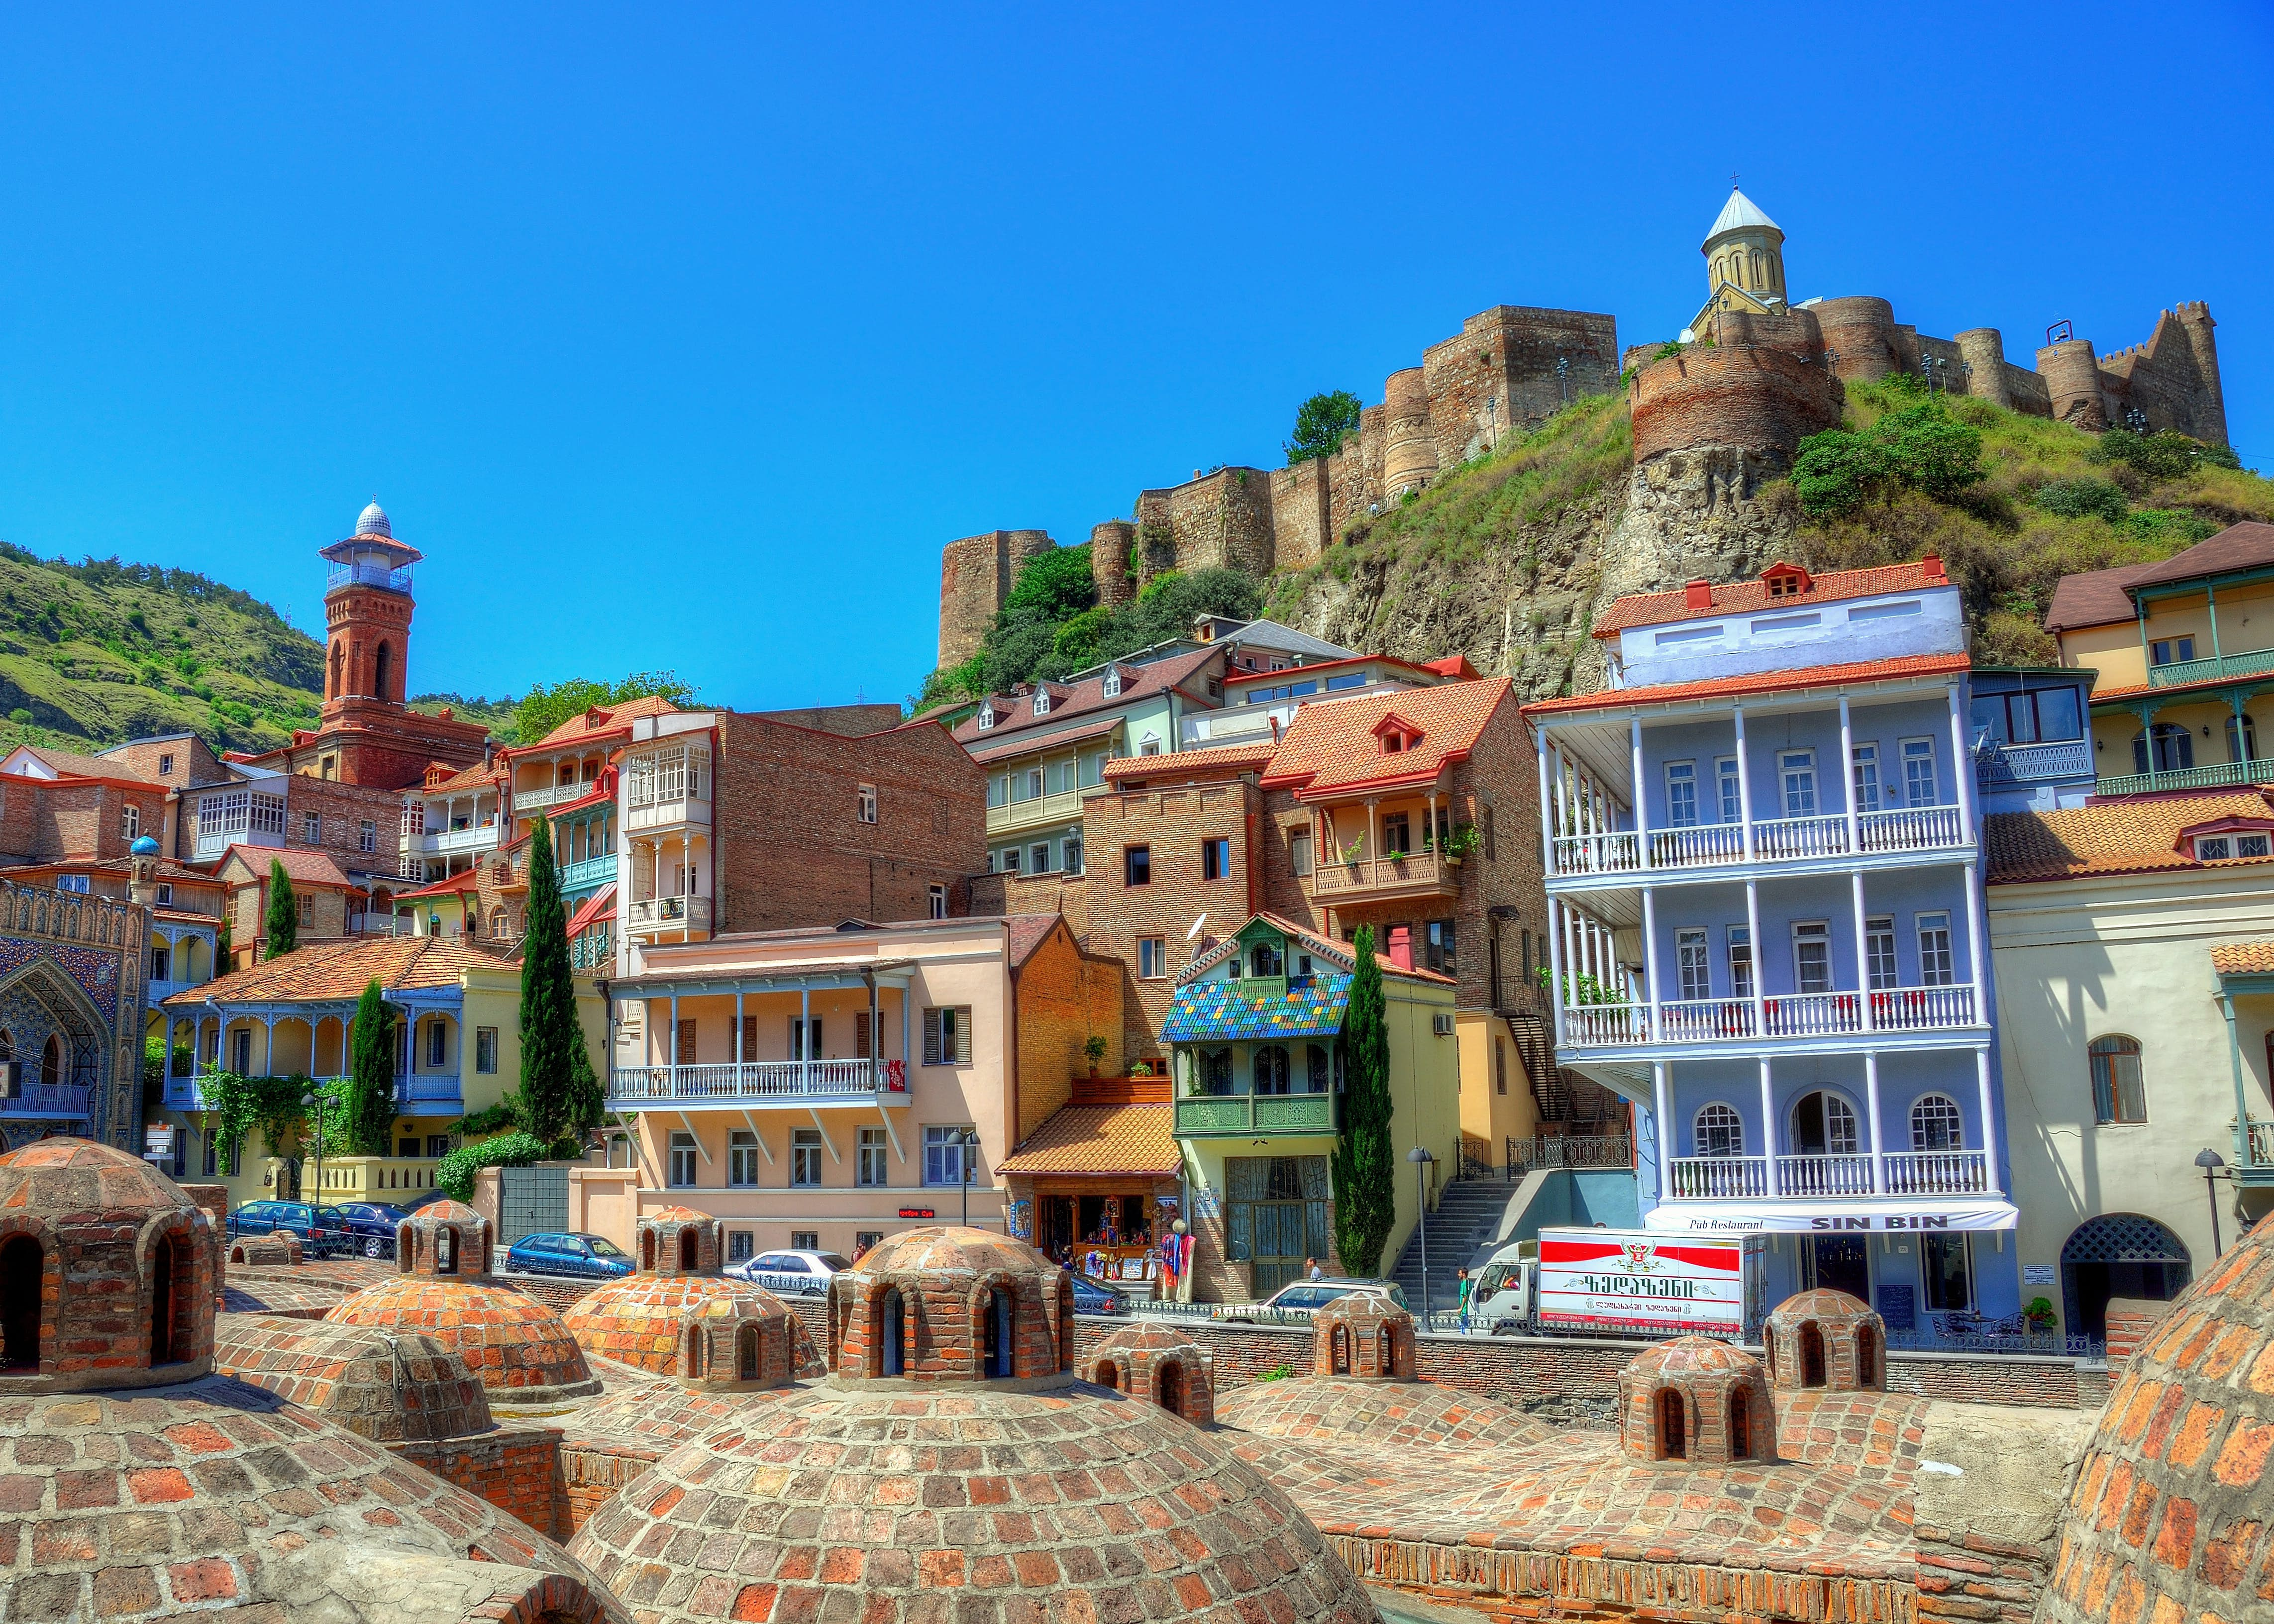 Built as a Persian citadel in the 4th century, Narikala Fortress overlooks the Georgian capital Tbilisi's labyrinthine Old Town © Aaron Geddes Photography / Moment Open / Getty Images